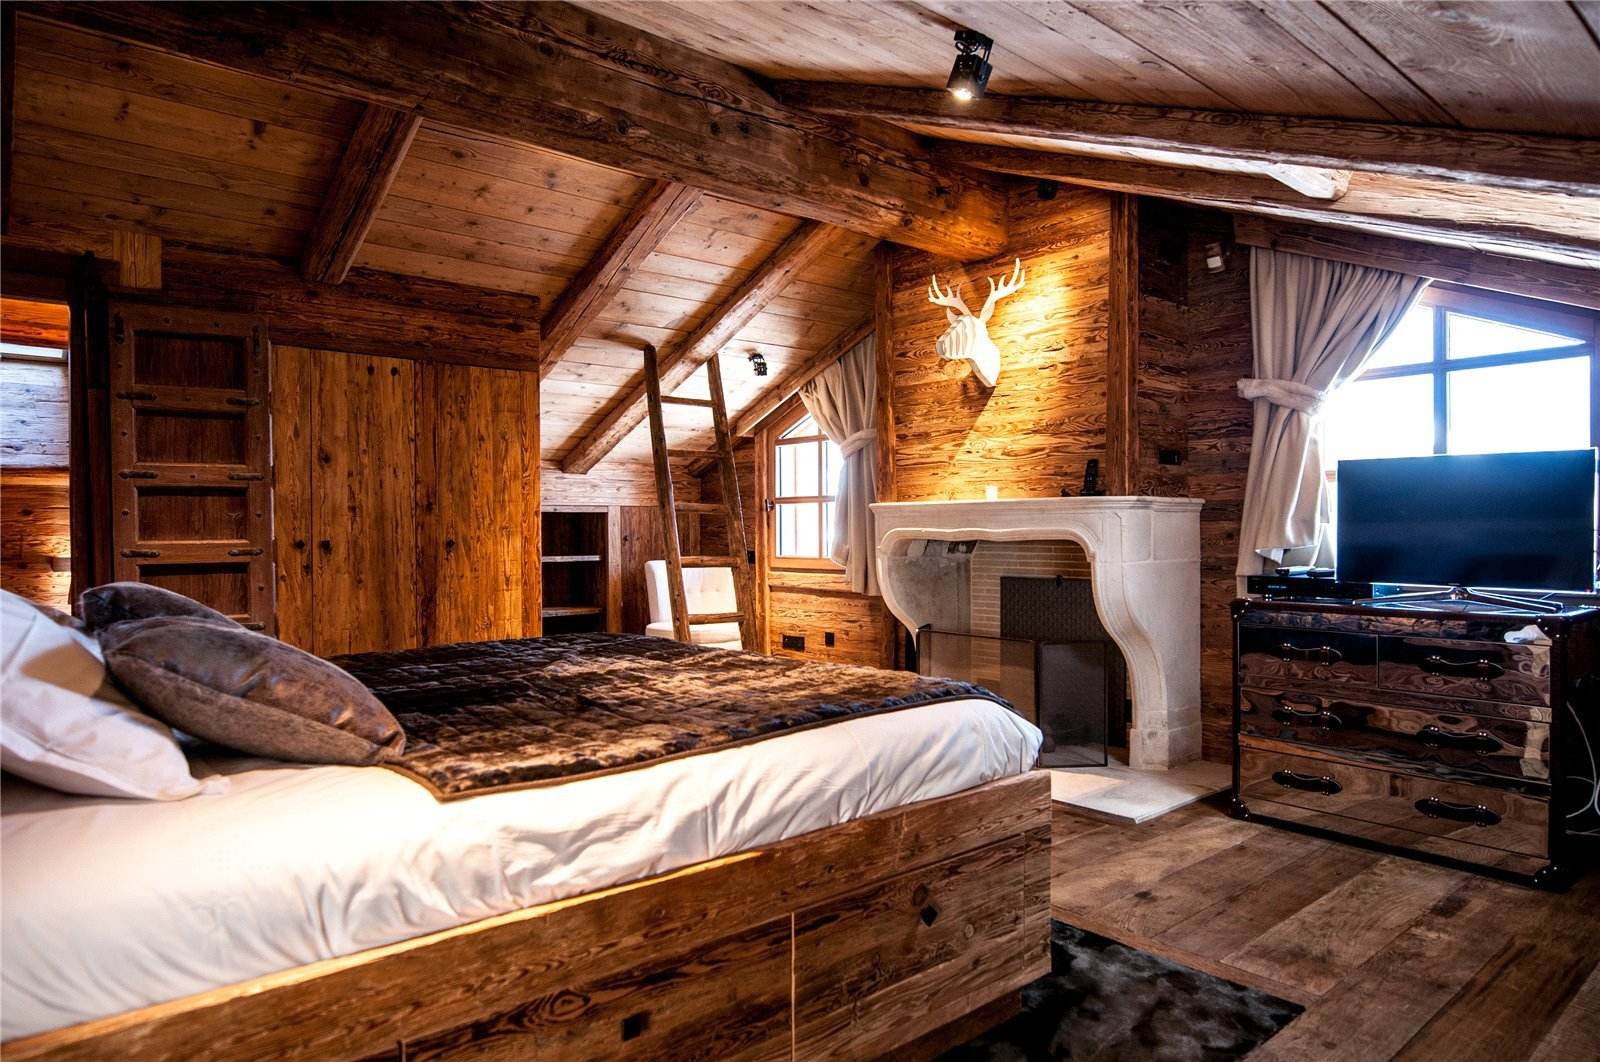 Buying Villa Courchevel 4 bedroom chalet of approximately 160 sq m, ideally situated for the ski slopes of Courchevel.